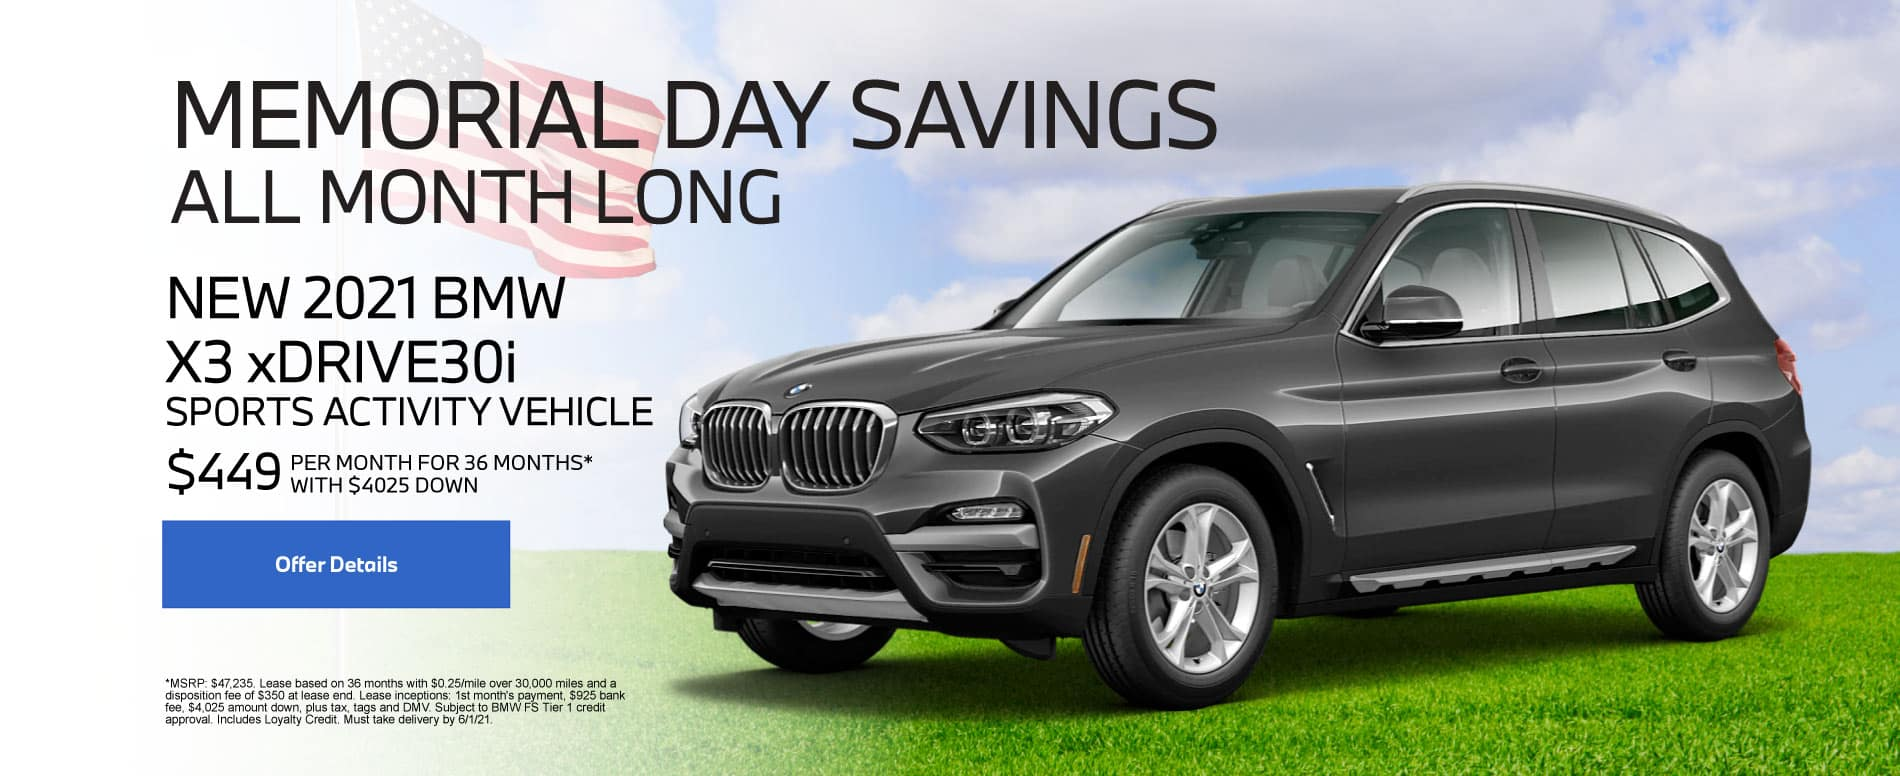 New 2021 BMW X3 $449 per month - Click for Details